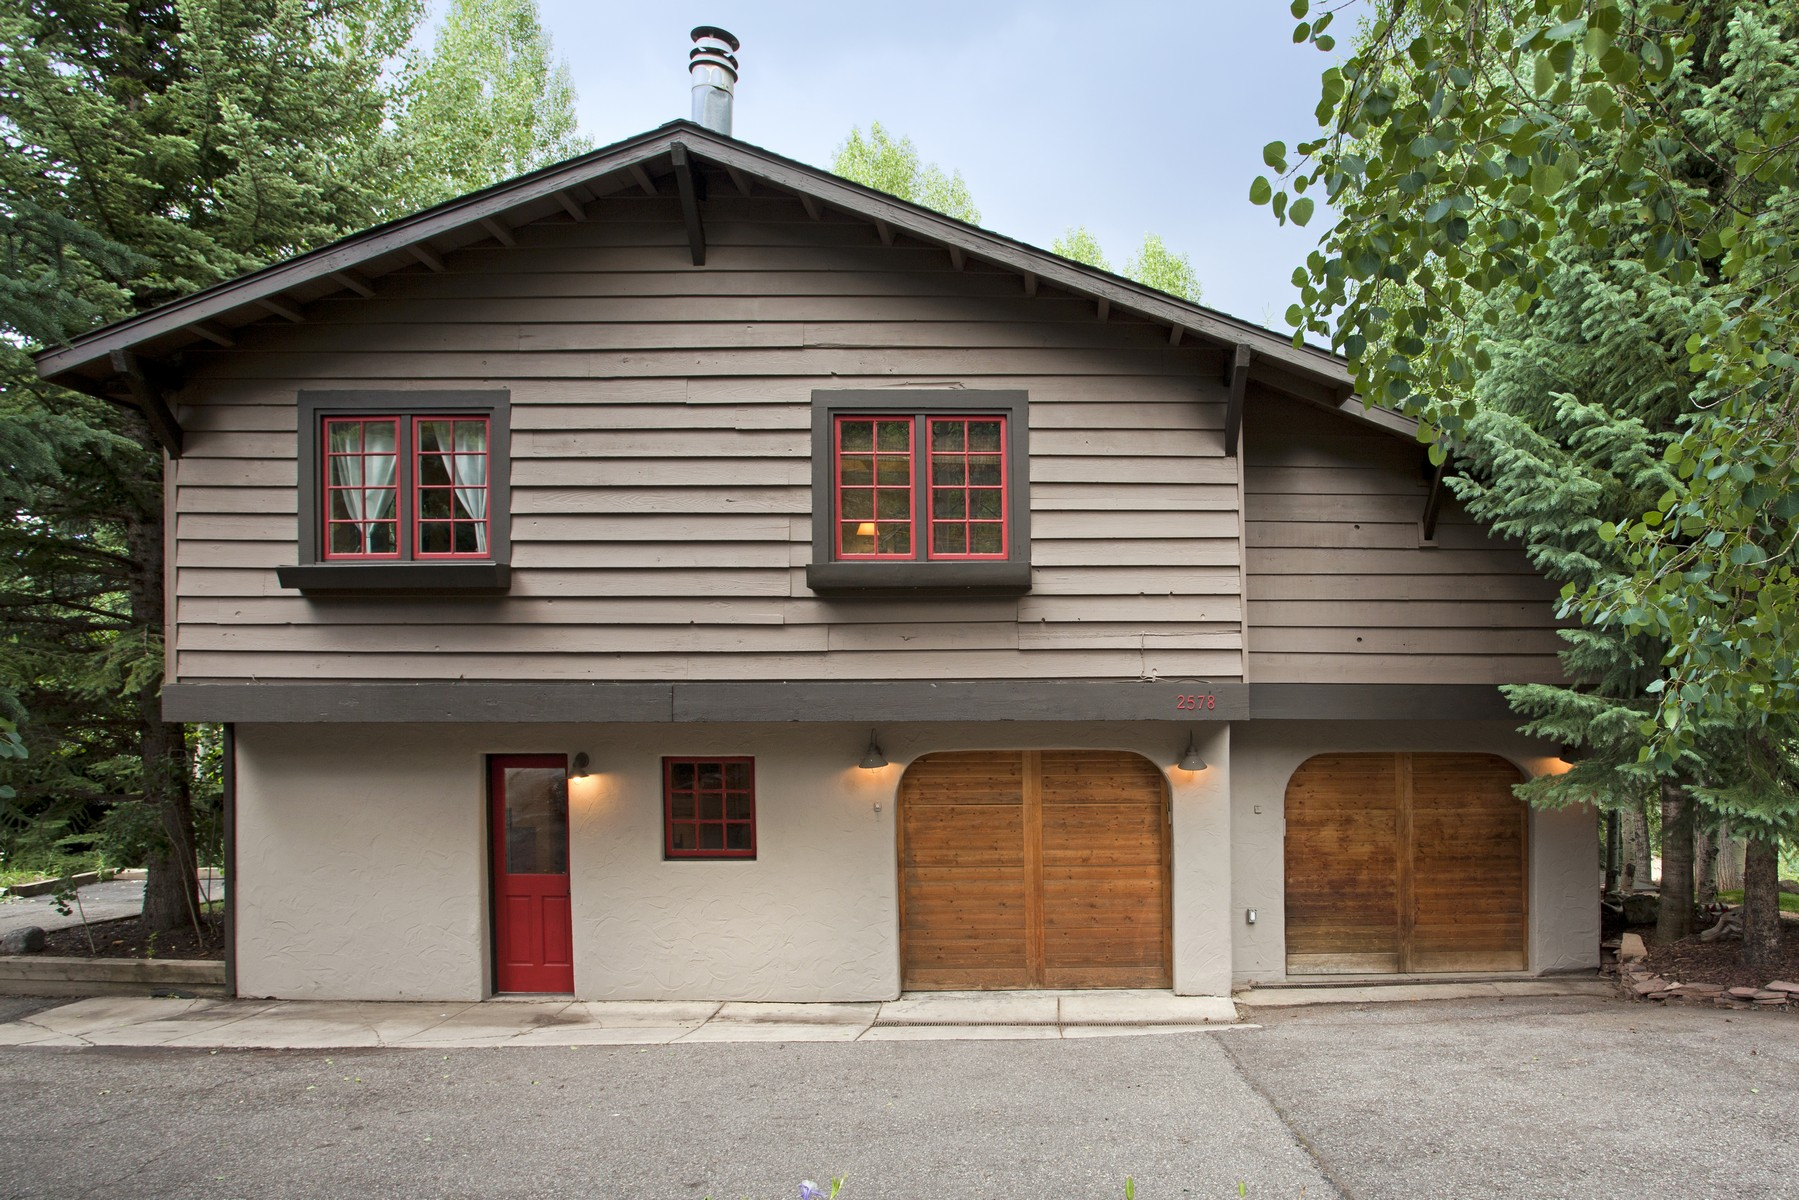 Single Family Home for Sale at European Chalet Worth Seeing 2578 Arosa Dr. Vail, Colorado, 81657 United States